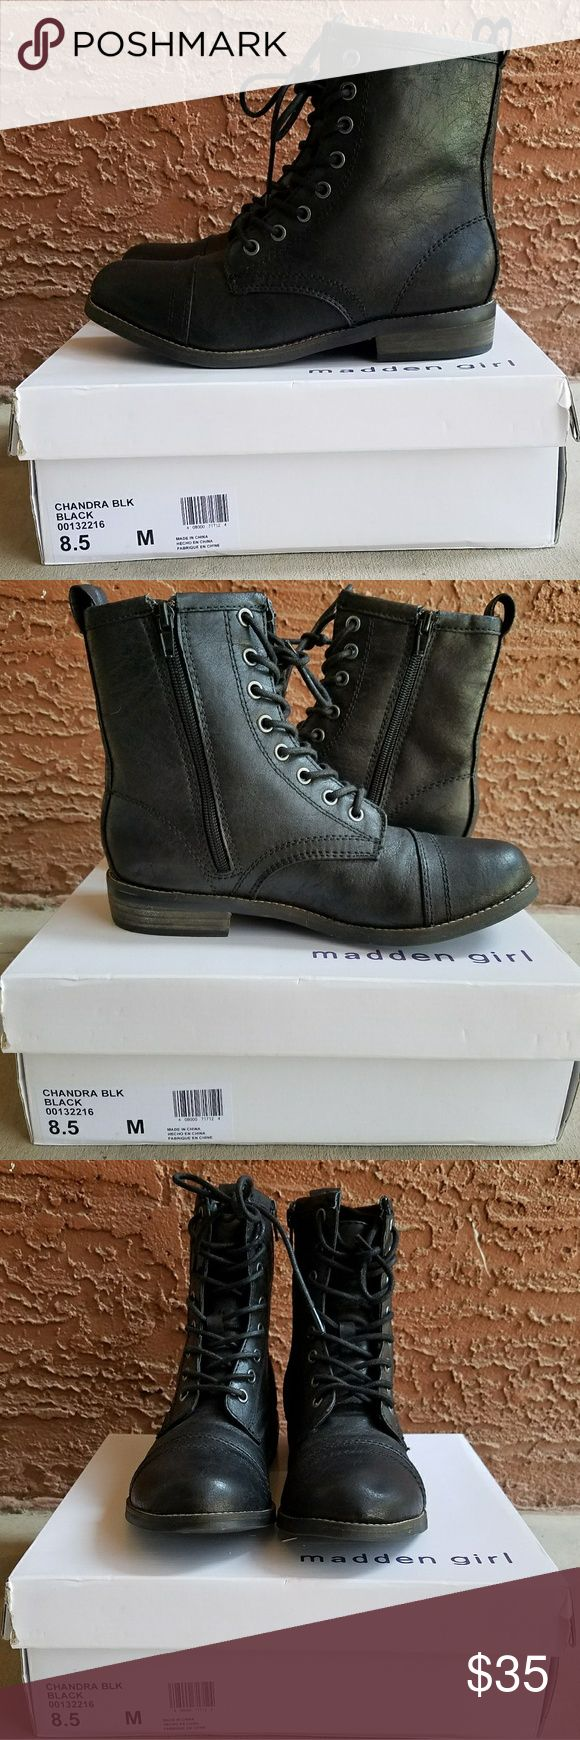 Black Boots Madden Girl Chandra boots are brand spanking new.  Ordered them online and they don't fit. (I know, I should've tried them on before i bought them) So, my mistake and your gain! No scratches or other wear. Size 8.5M. NWOT. Madden Girl Shoes Combat & Moto Boots